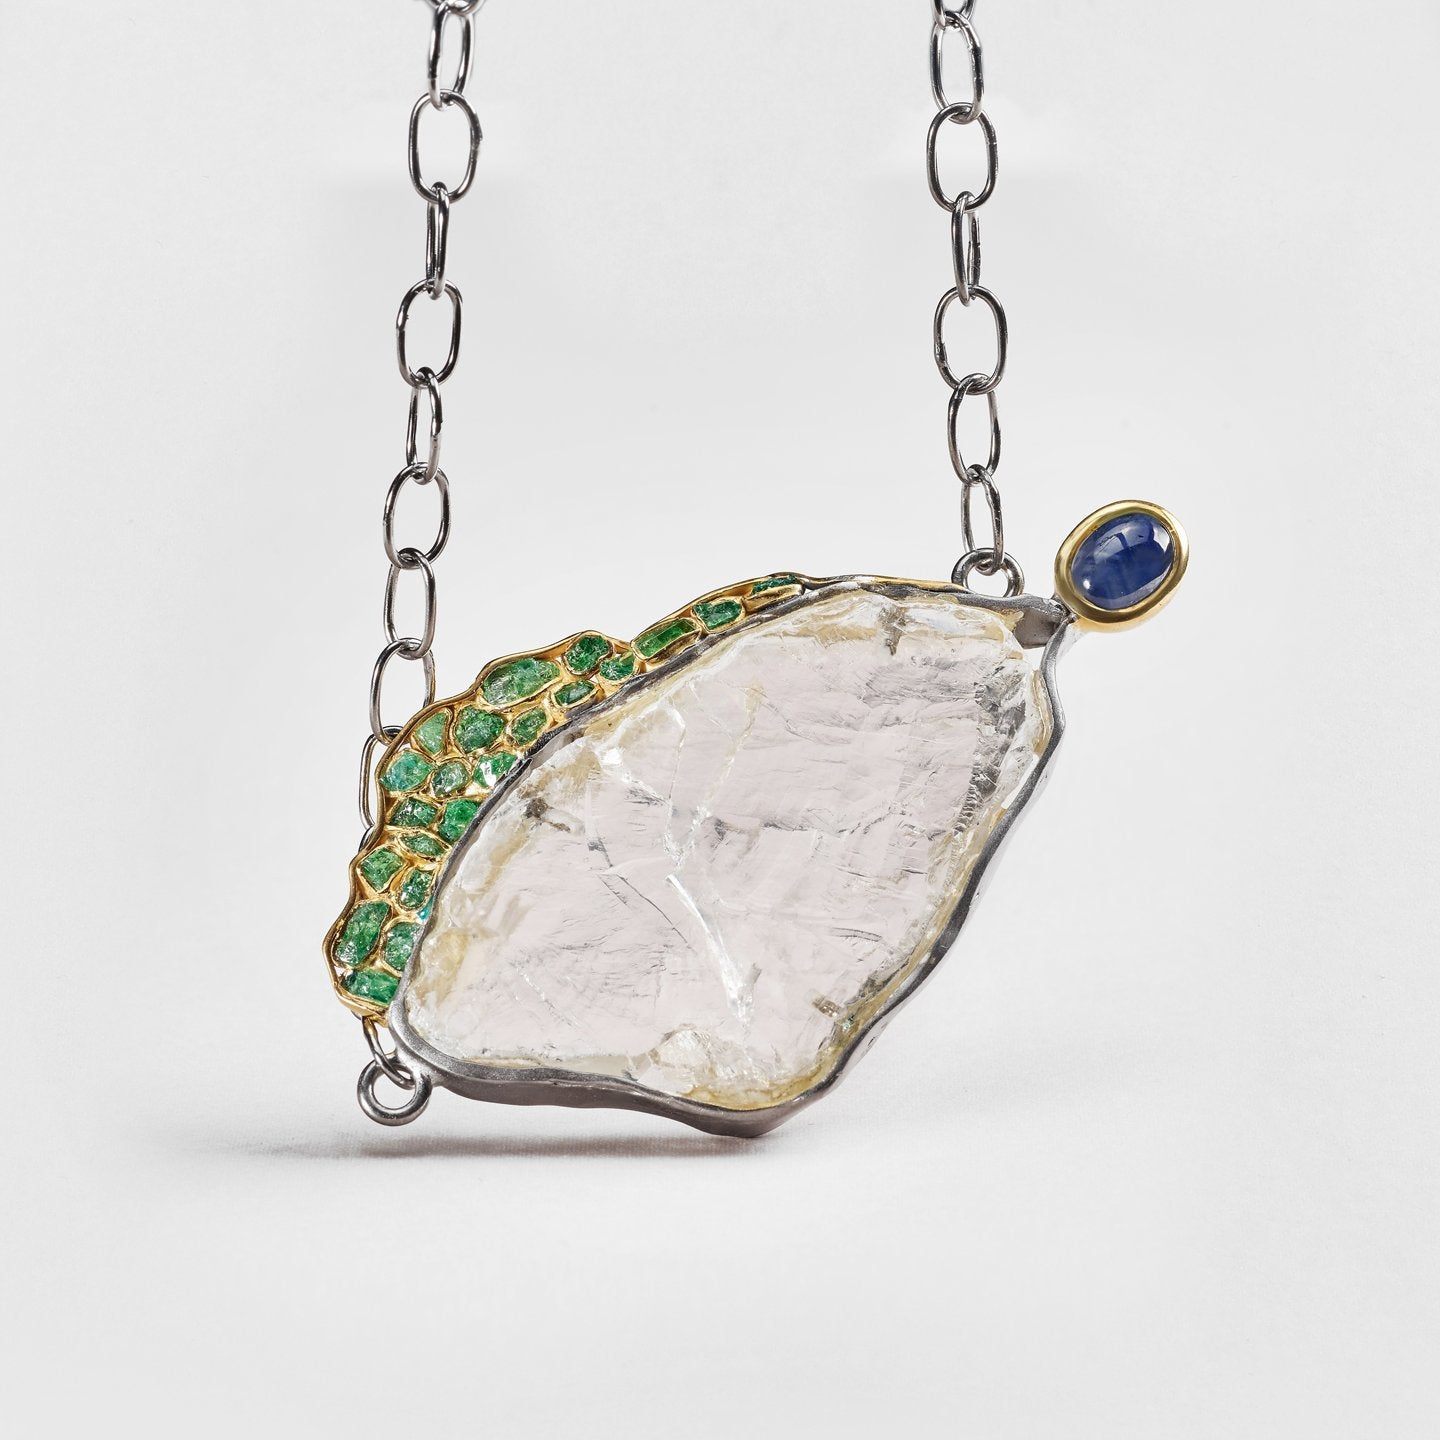 Austa Quartz and Tsavorite Necklace